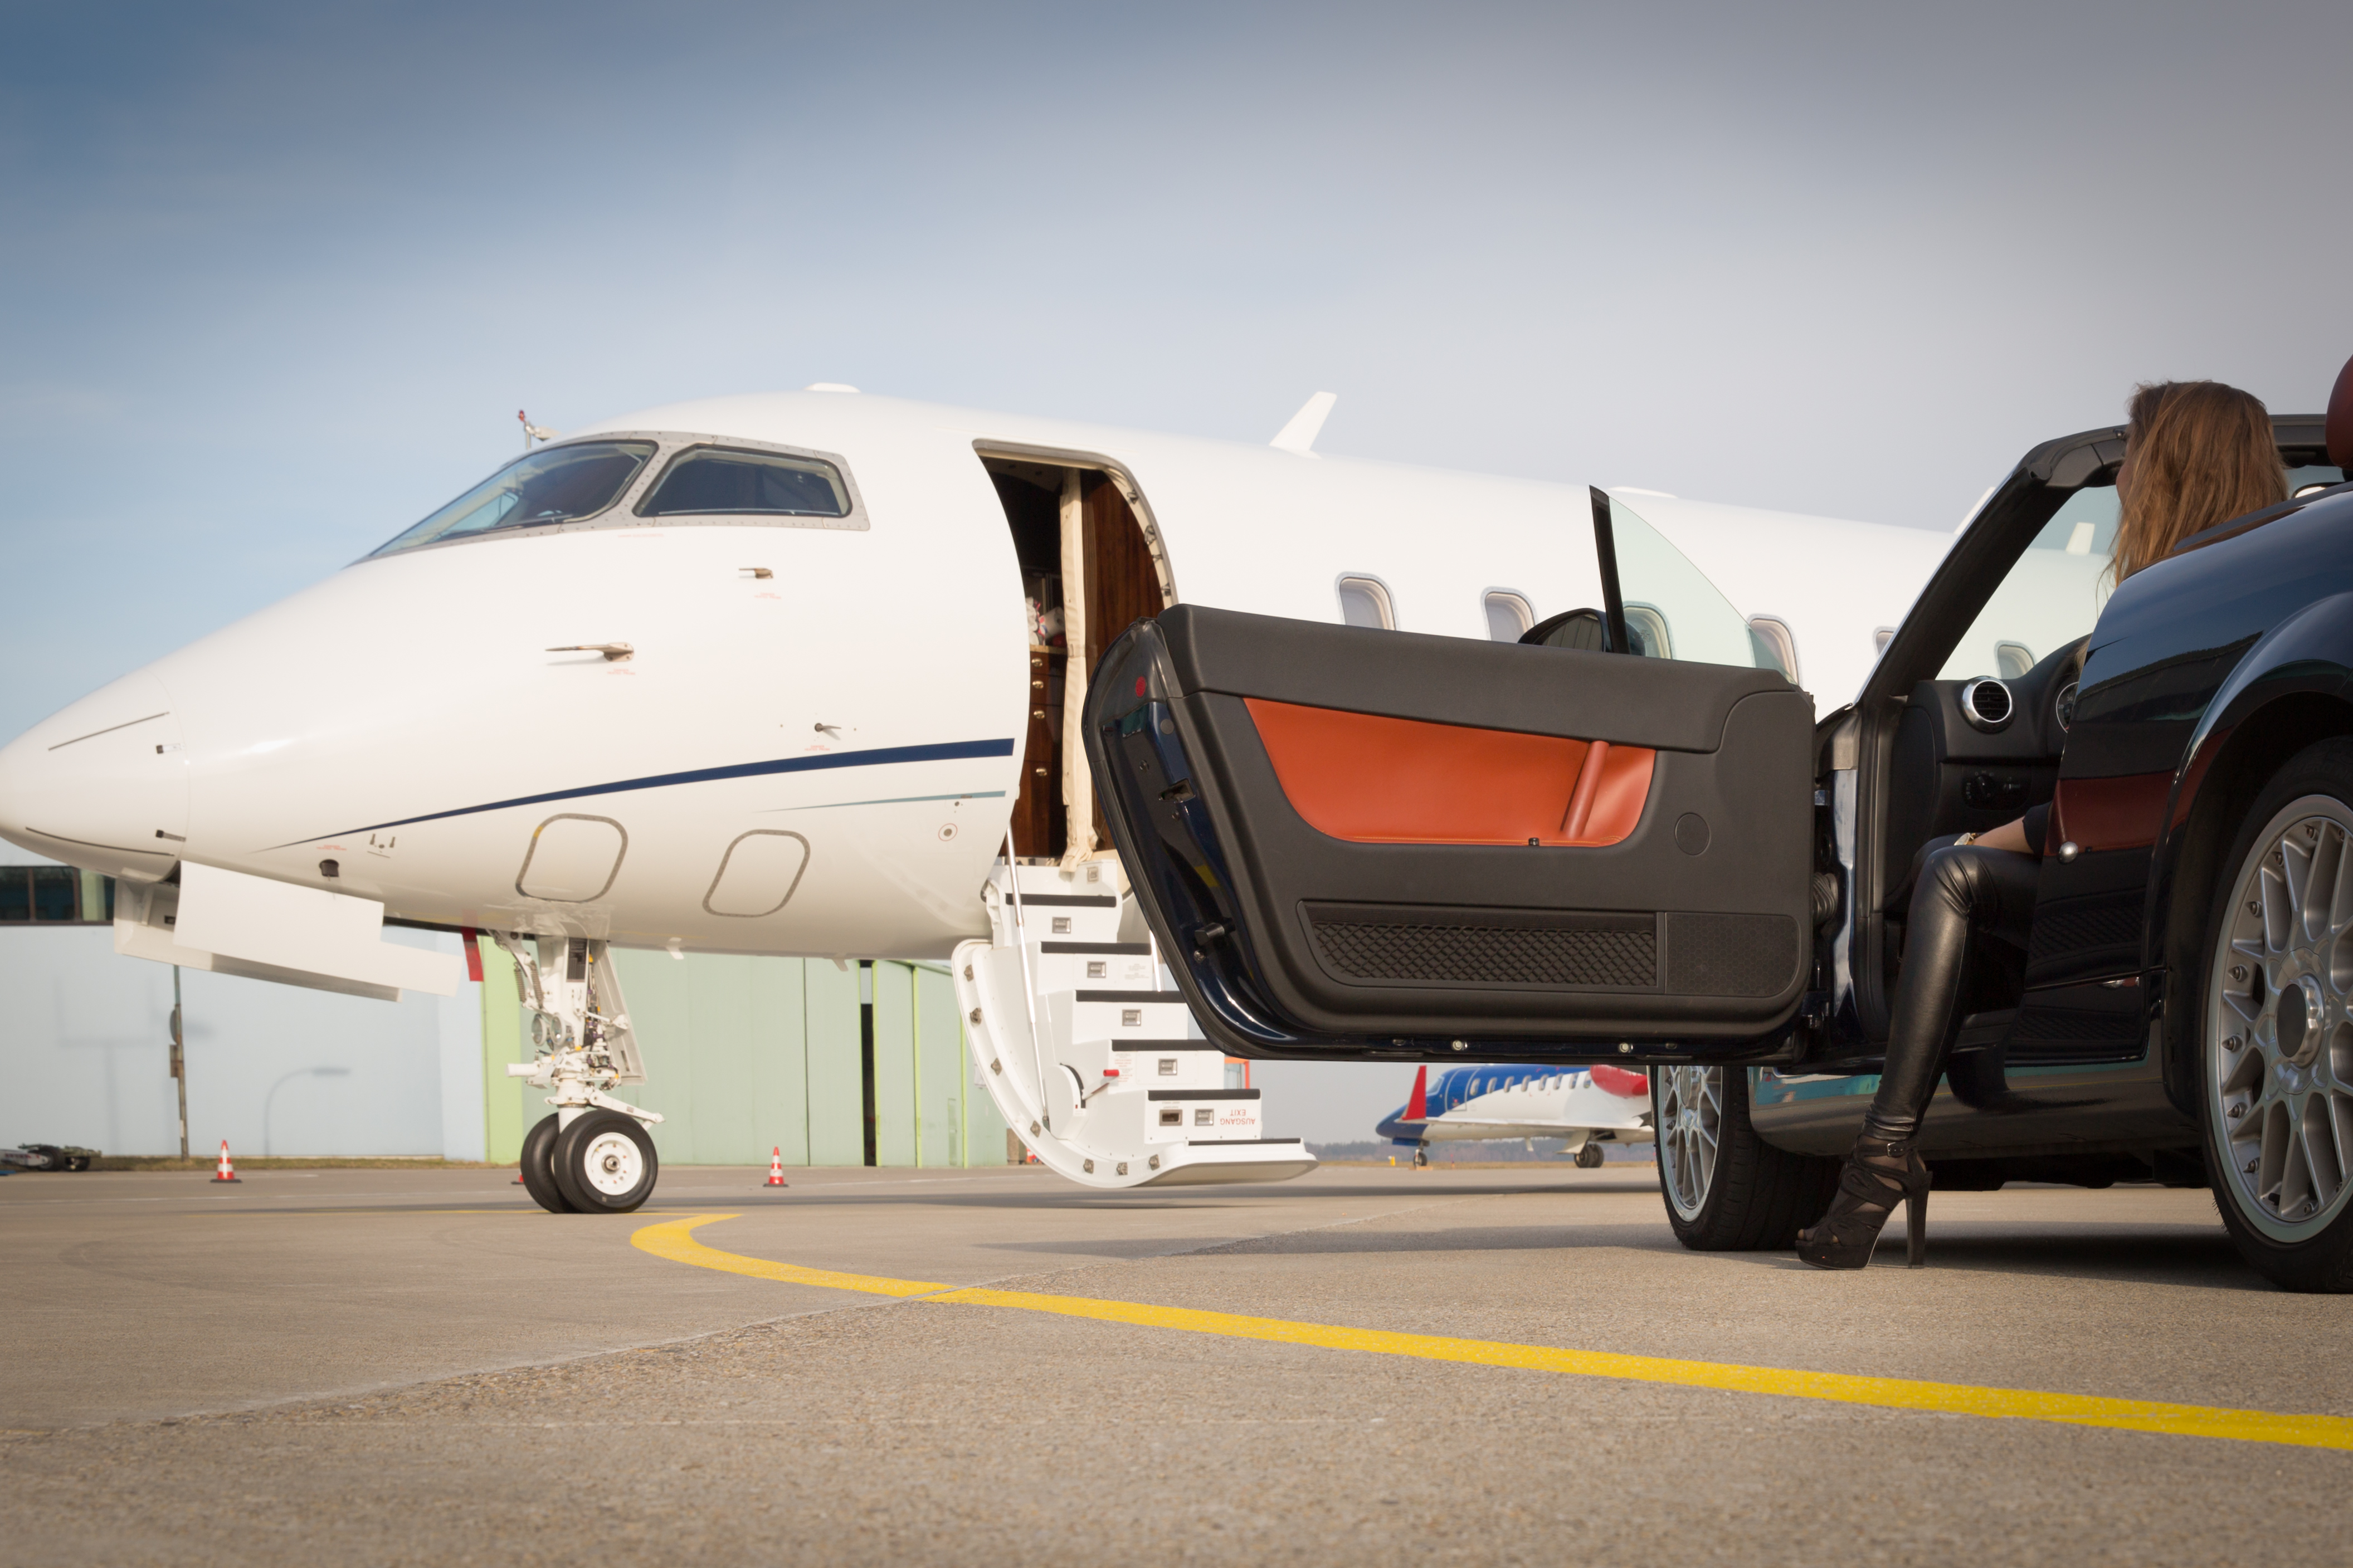 Best Occasions To Hire A Private Jet